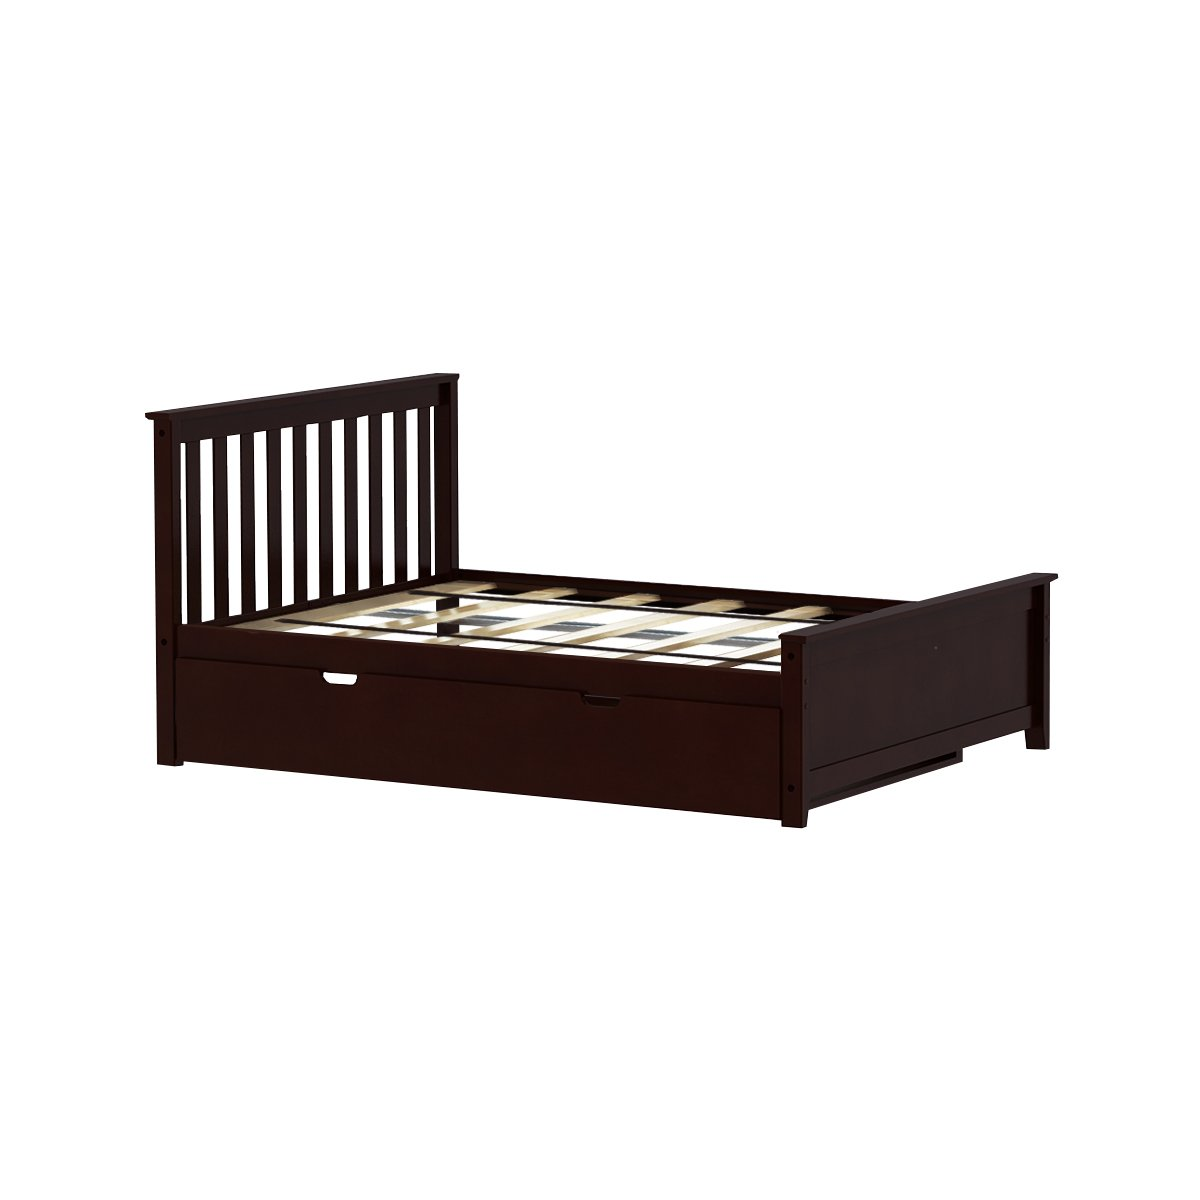 on sale 038c7 0aa89 Max & Lily Solid Wood Full-Size Bed with Trundle Bed, Espresso